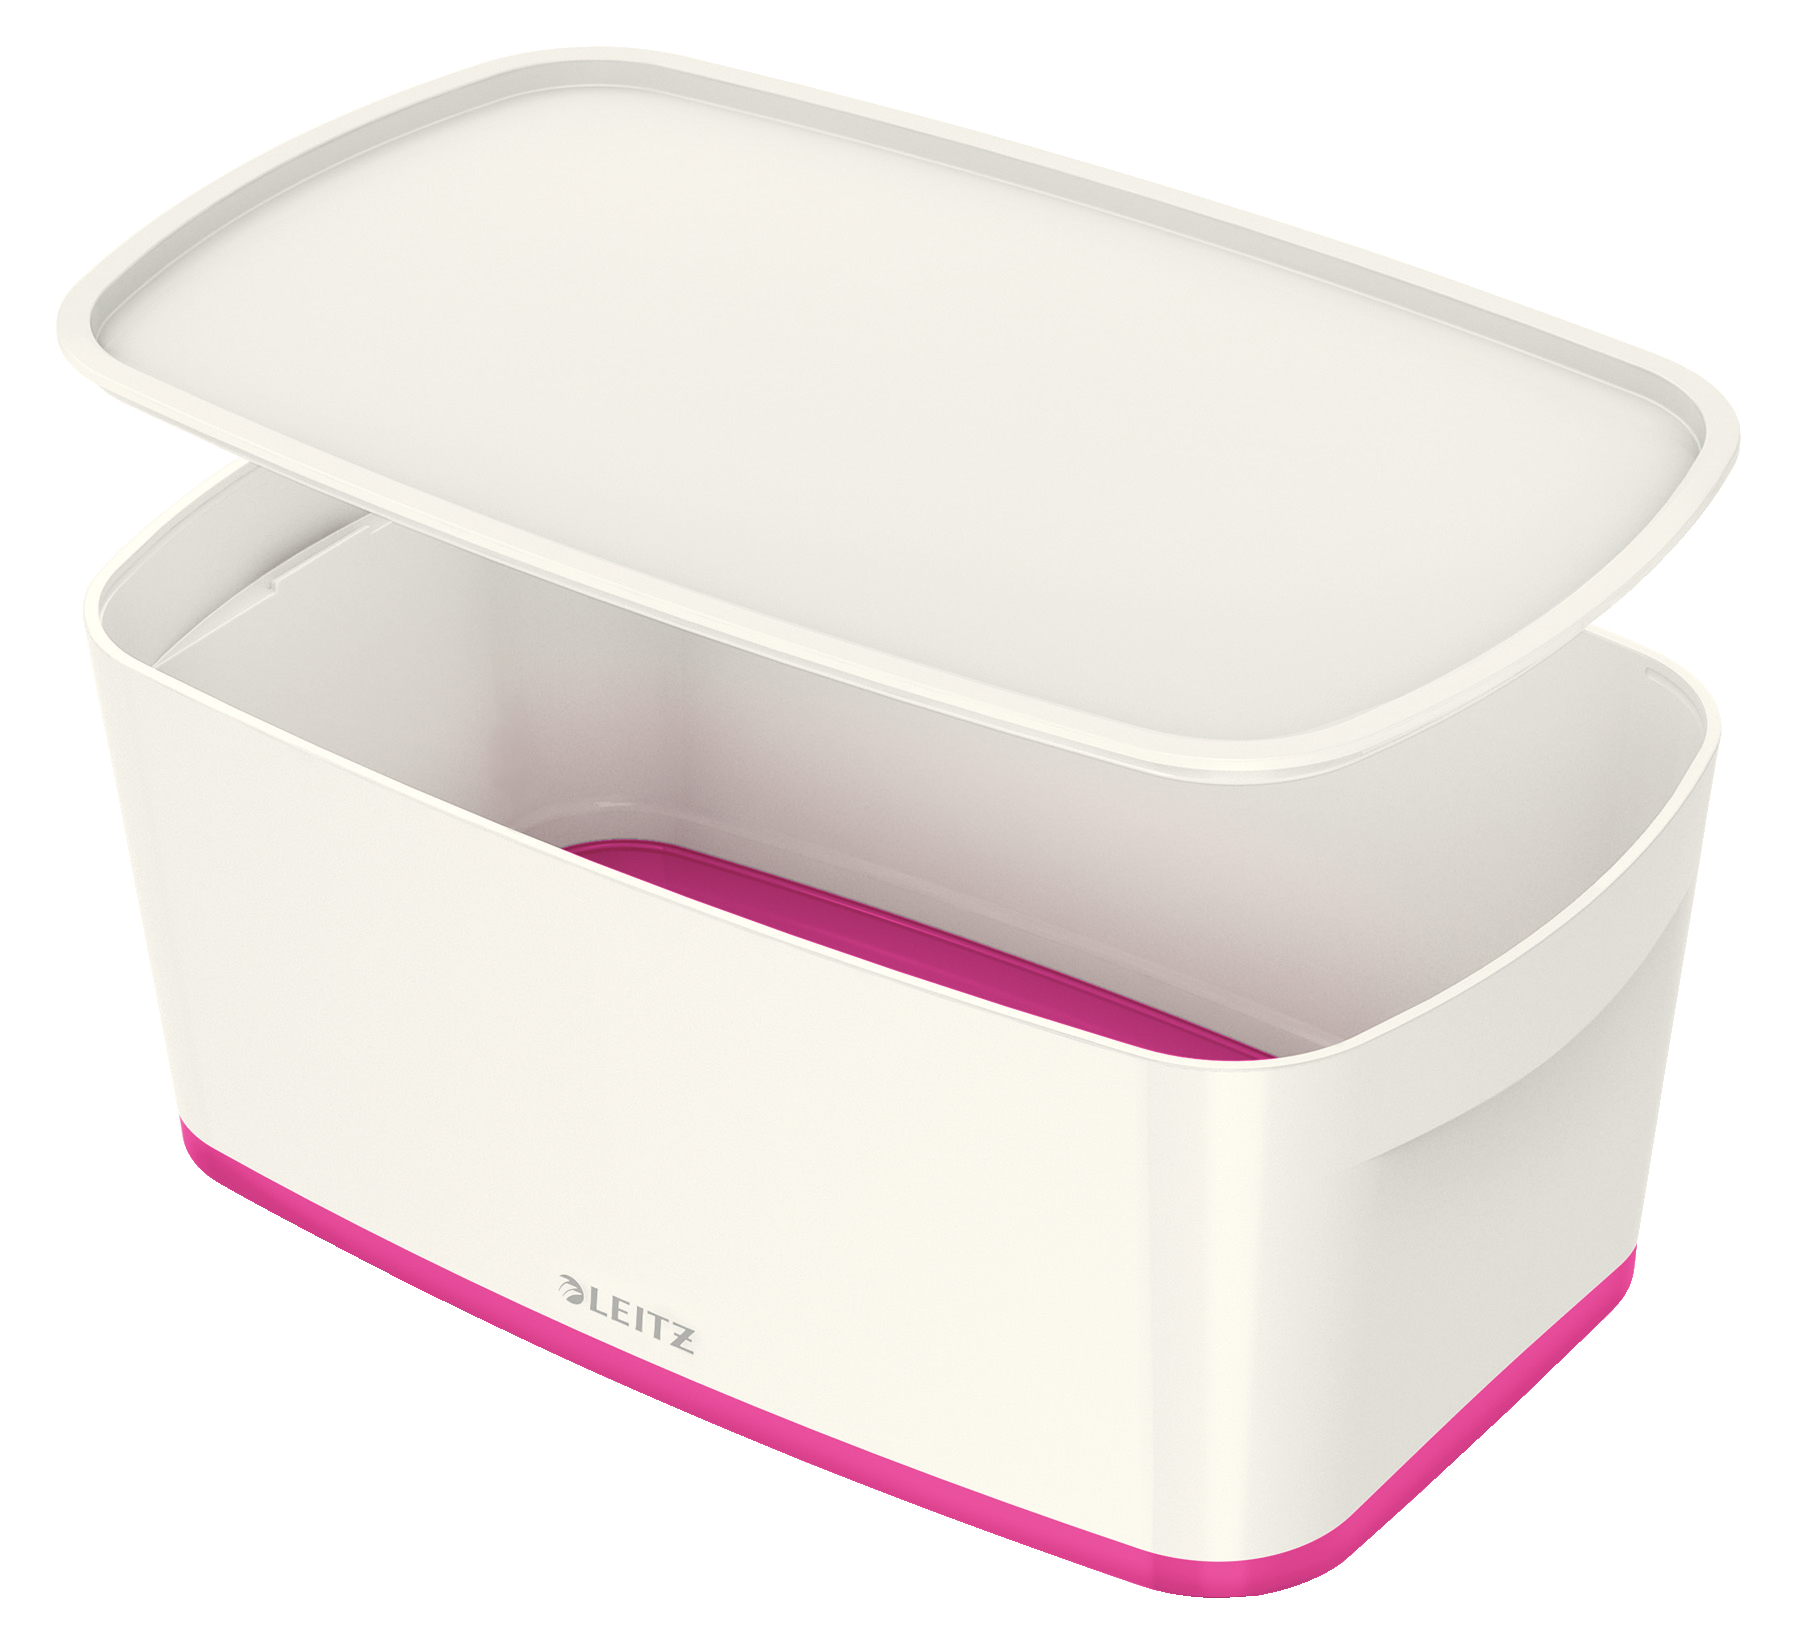 Storage Boxes Leitz MyBox Small with Lid WOW White Pink